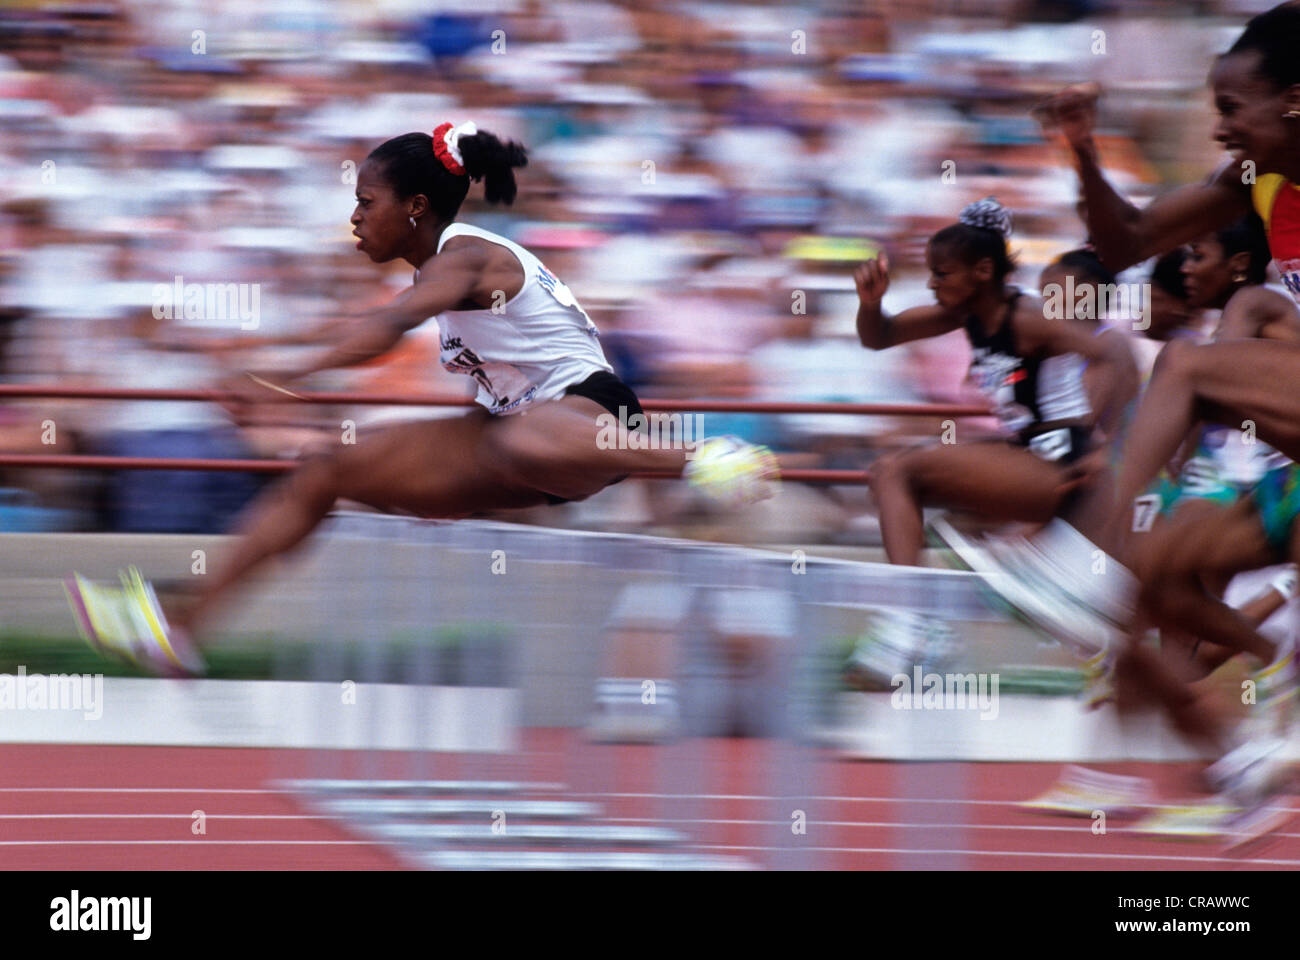 Gail Devers competing in the 100 meter hurdles at the 1992 US Olympic Track and Field Trials. - Stock Image